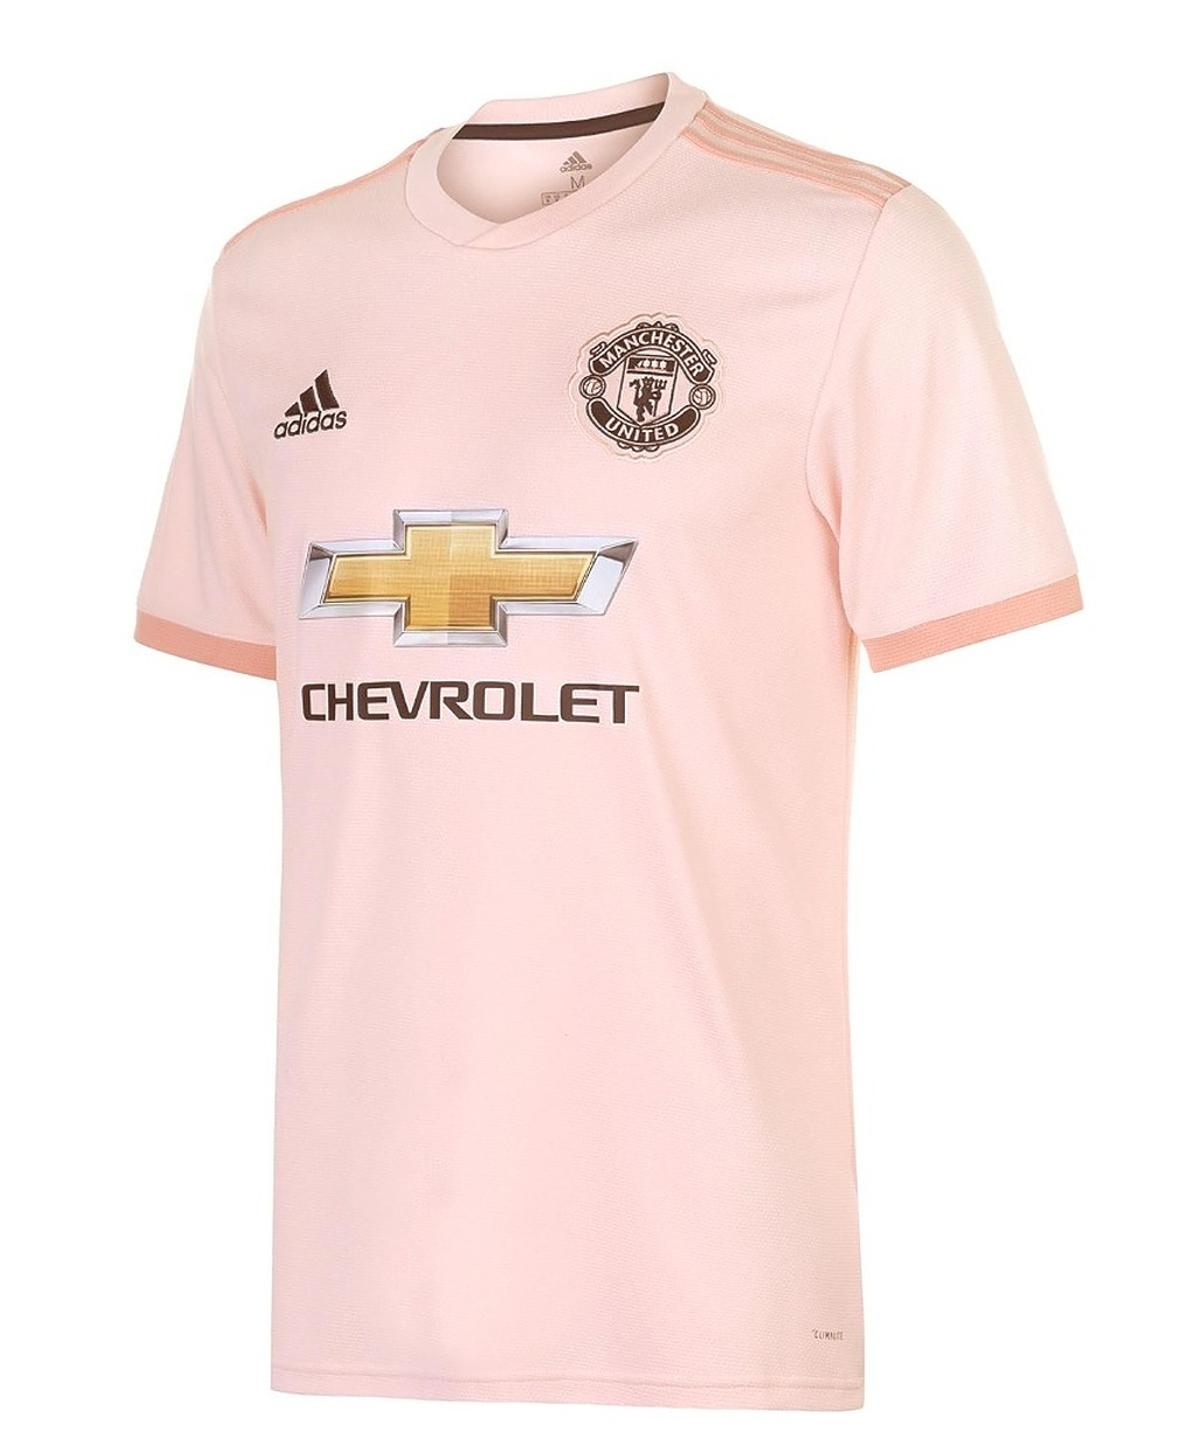 a9c17cf7a Manchester United 3rd Shirt Pink in LU1 Luton for £24.99 for sale ...